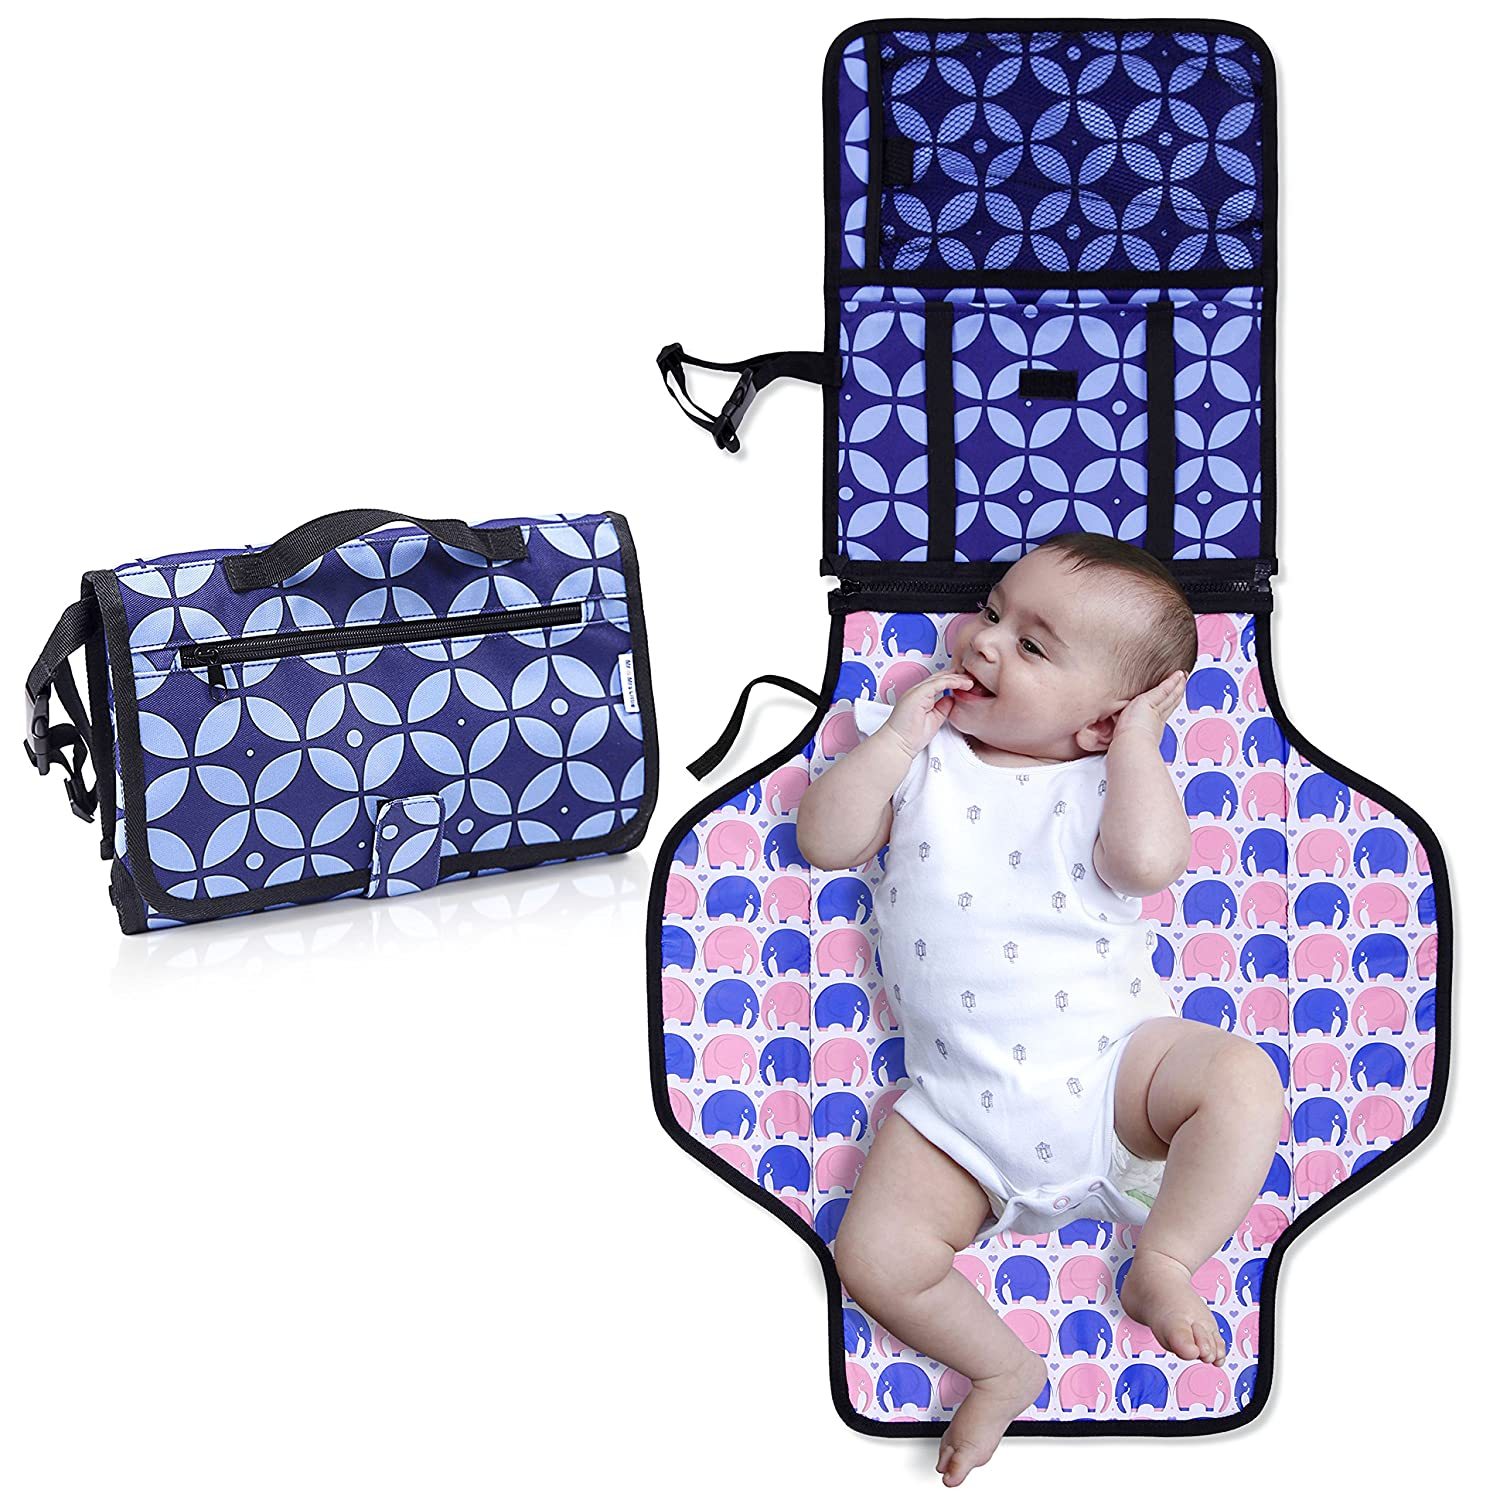 Diaper Changing Pad with Bonus Loop for Toys- Portable Diaper Changing Kit for Dads & Moms -Changing Station Organizer for Outdoor & Travel - Play Mat On The Go- Perfect Baby Shower Gift Mr&Mrs Little